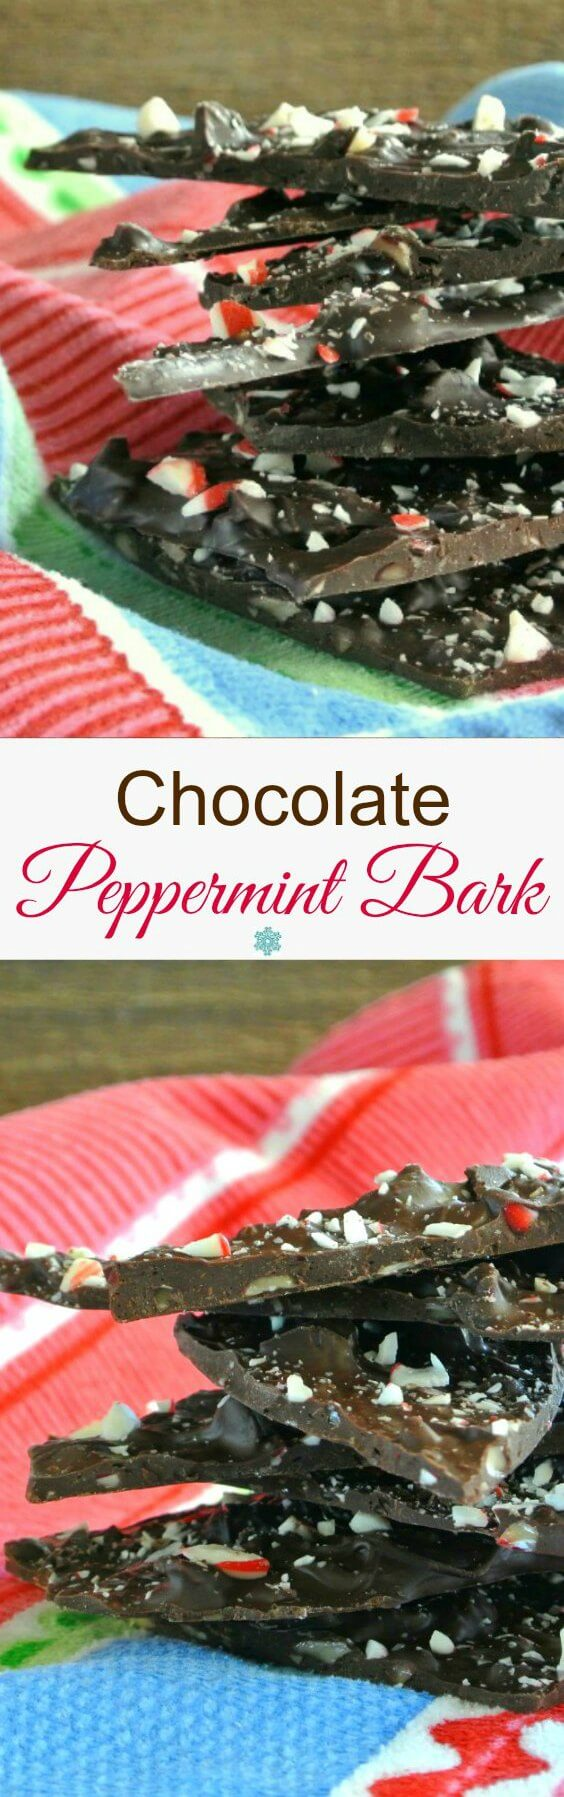 Chocolate Peppermint Bark is a holiday classic and is made healthier with deep rich chocolate that has hints of a minty flavor and little bits of peppermint candy cane.  Candy that's for everyone as it's gluten-free, vegan, and paleo. #recipes #desserts #Christmas #Thanksgiving #paleo #glutenfree #candy #vegan #veganrecipes #reganfood #vegancandy #bark #veganinthefreezer